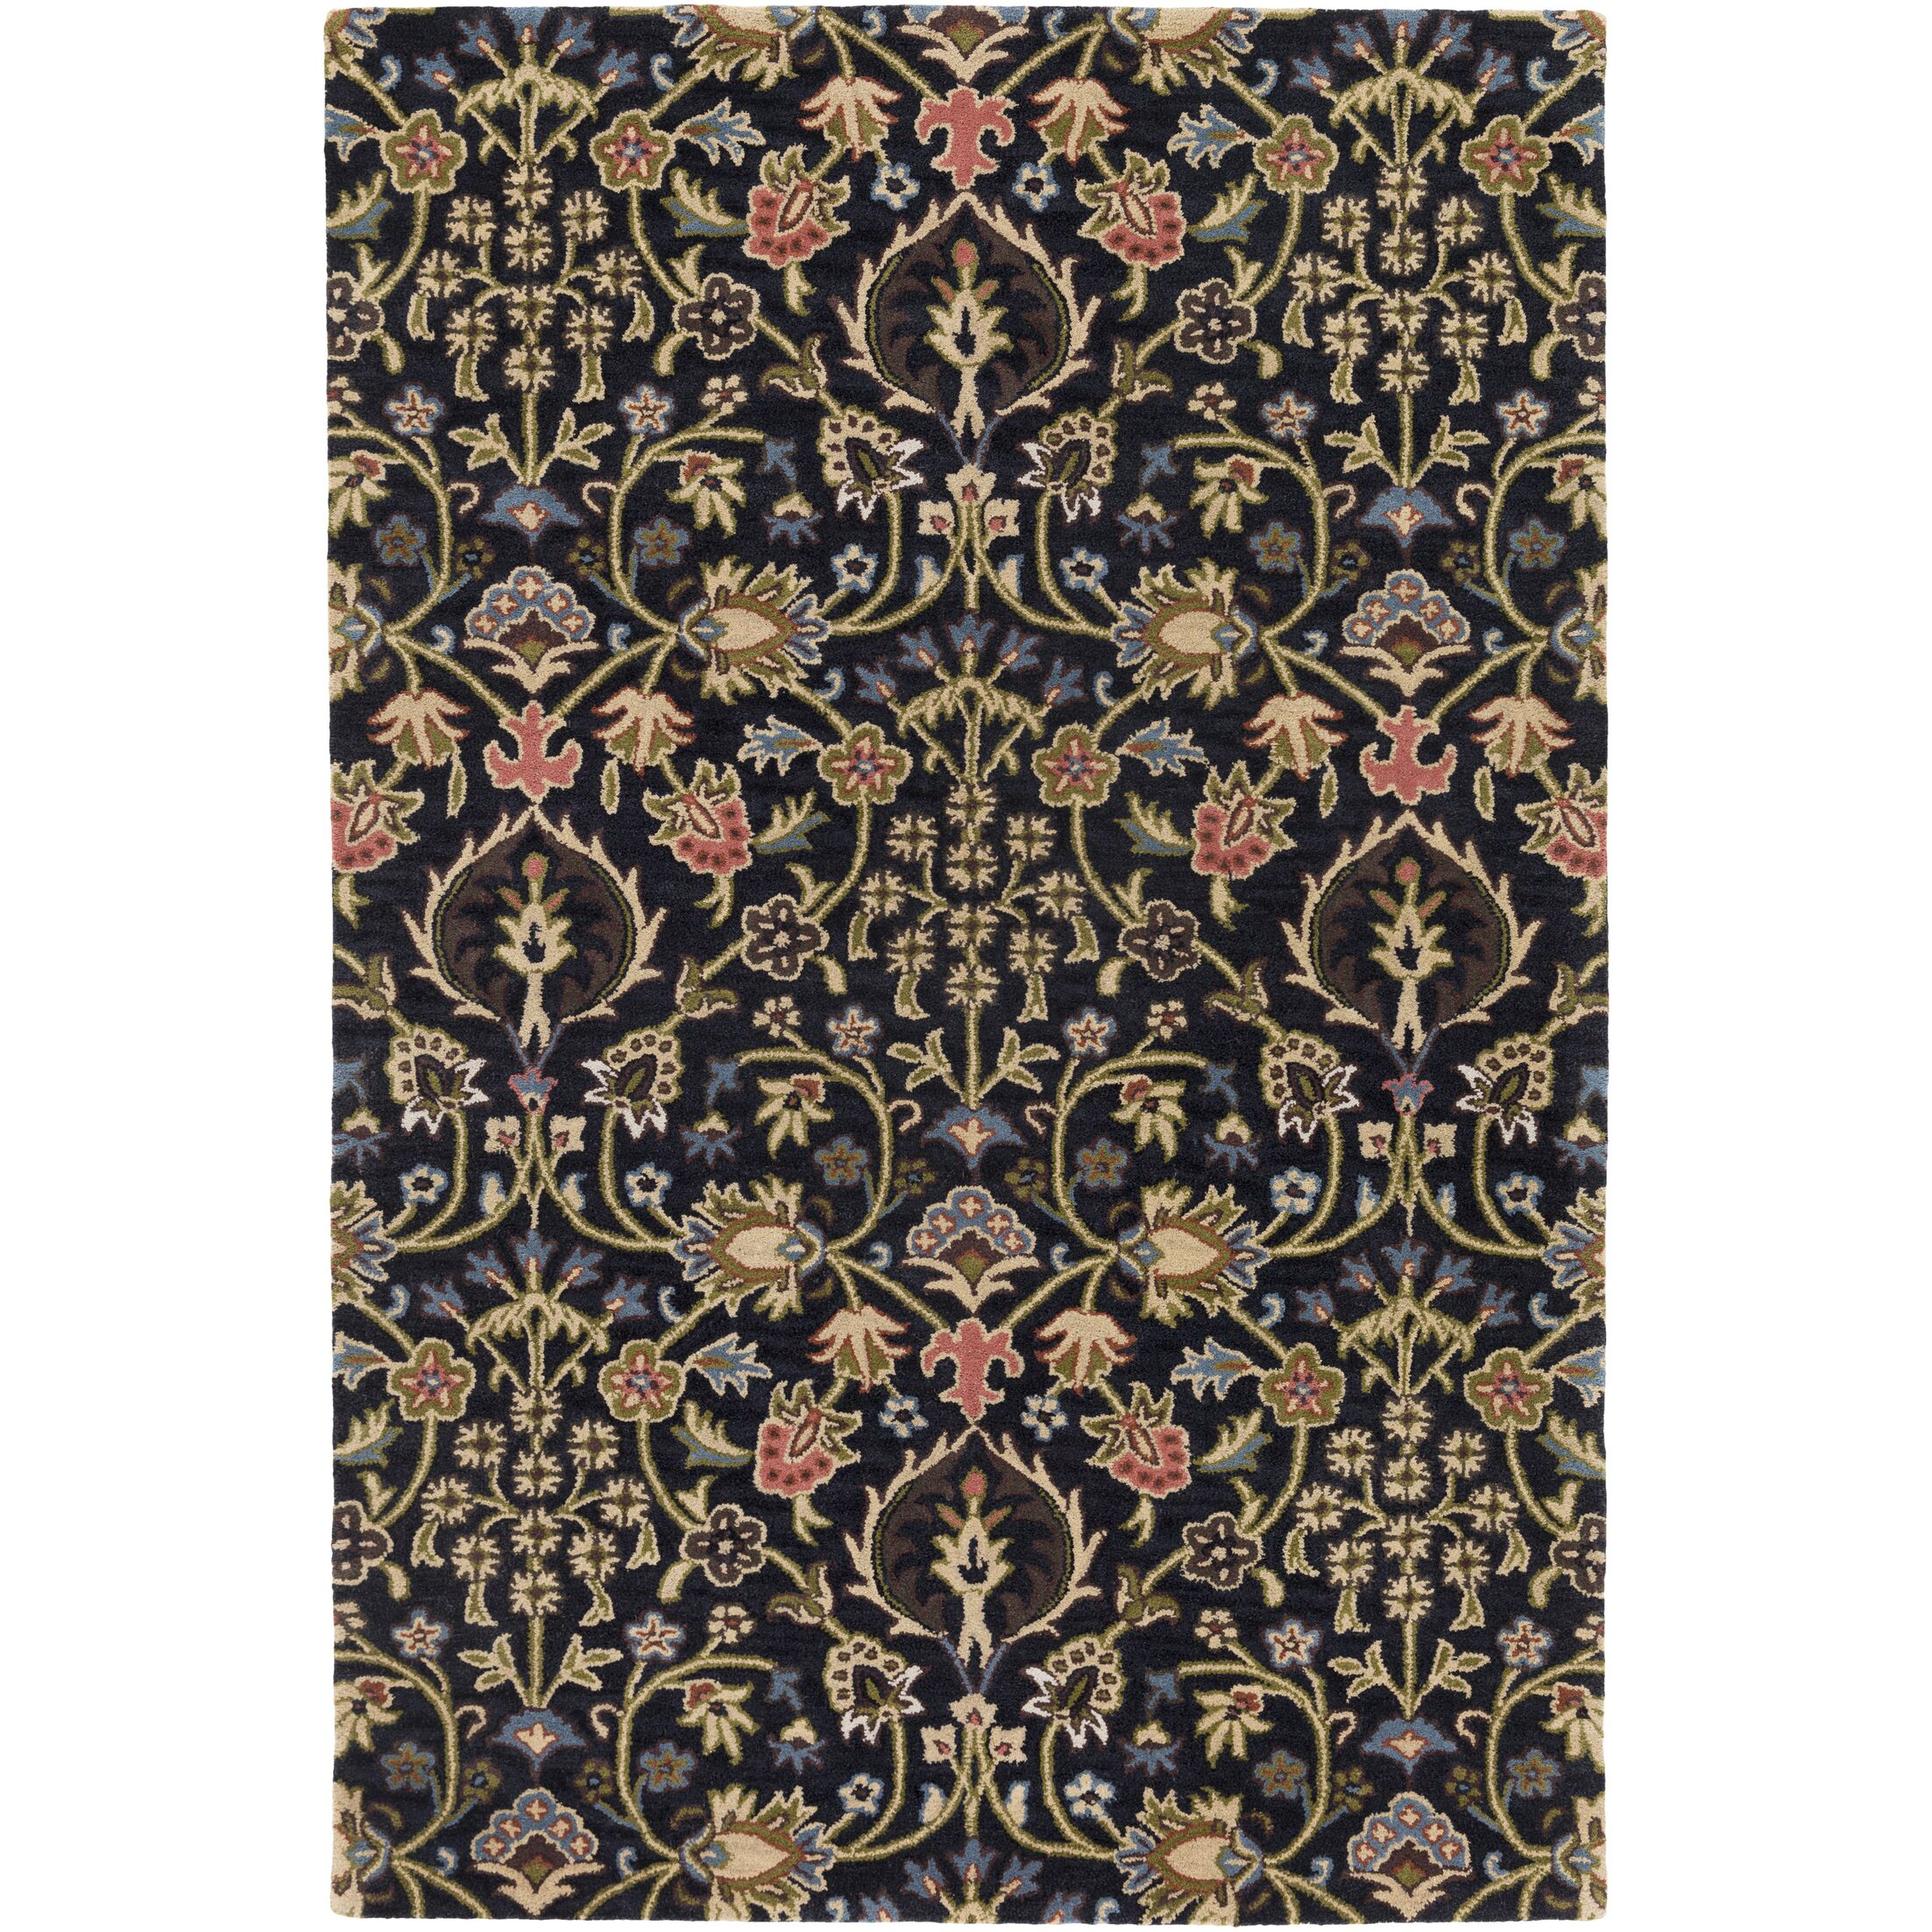 Alden Hand-Tufted Black Area Rug Rug Size: Rectangle 4' x 6'